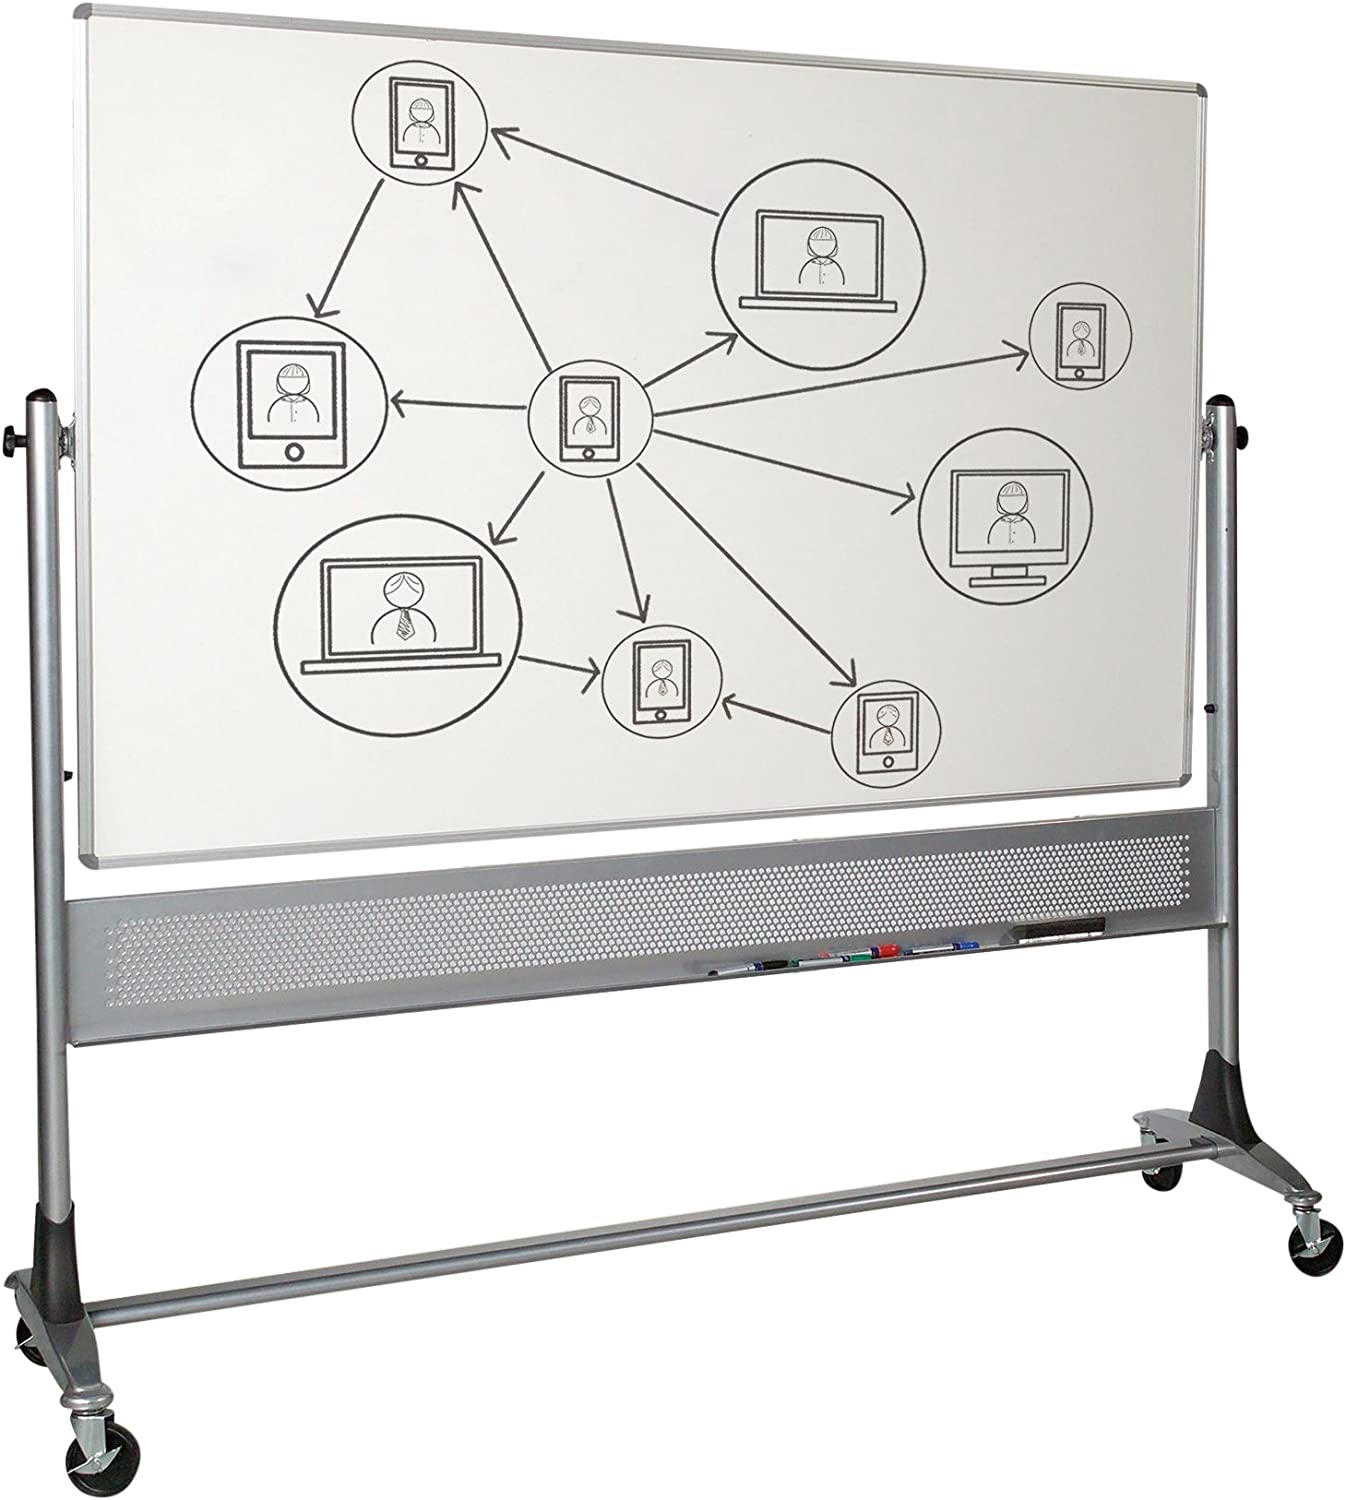 Best-Rite 669RG-HH Platinum Mobile Reversible Whiteboard Easel, 4 x 6 Feet Panel Size, Dura-Rite HPL Markerboard Surface